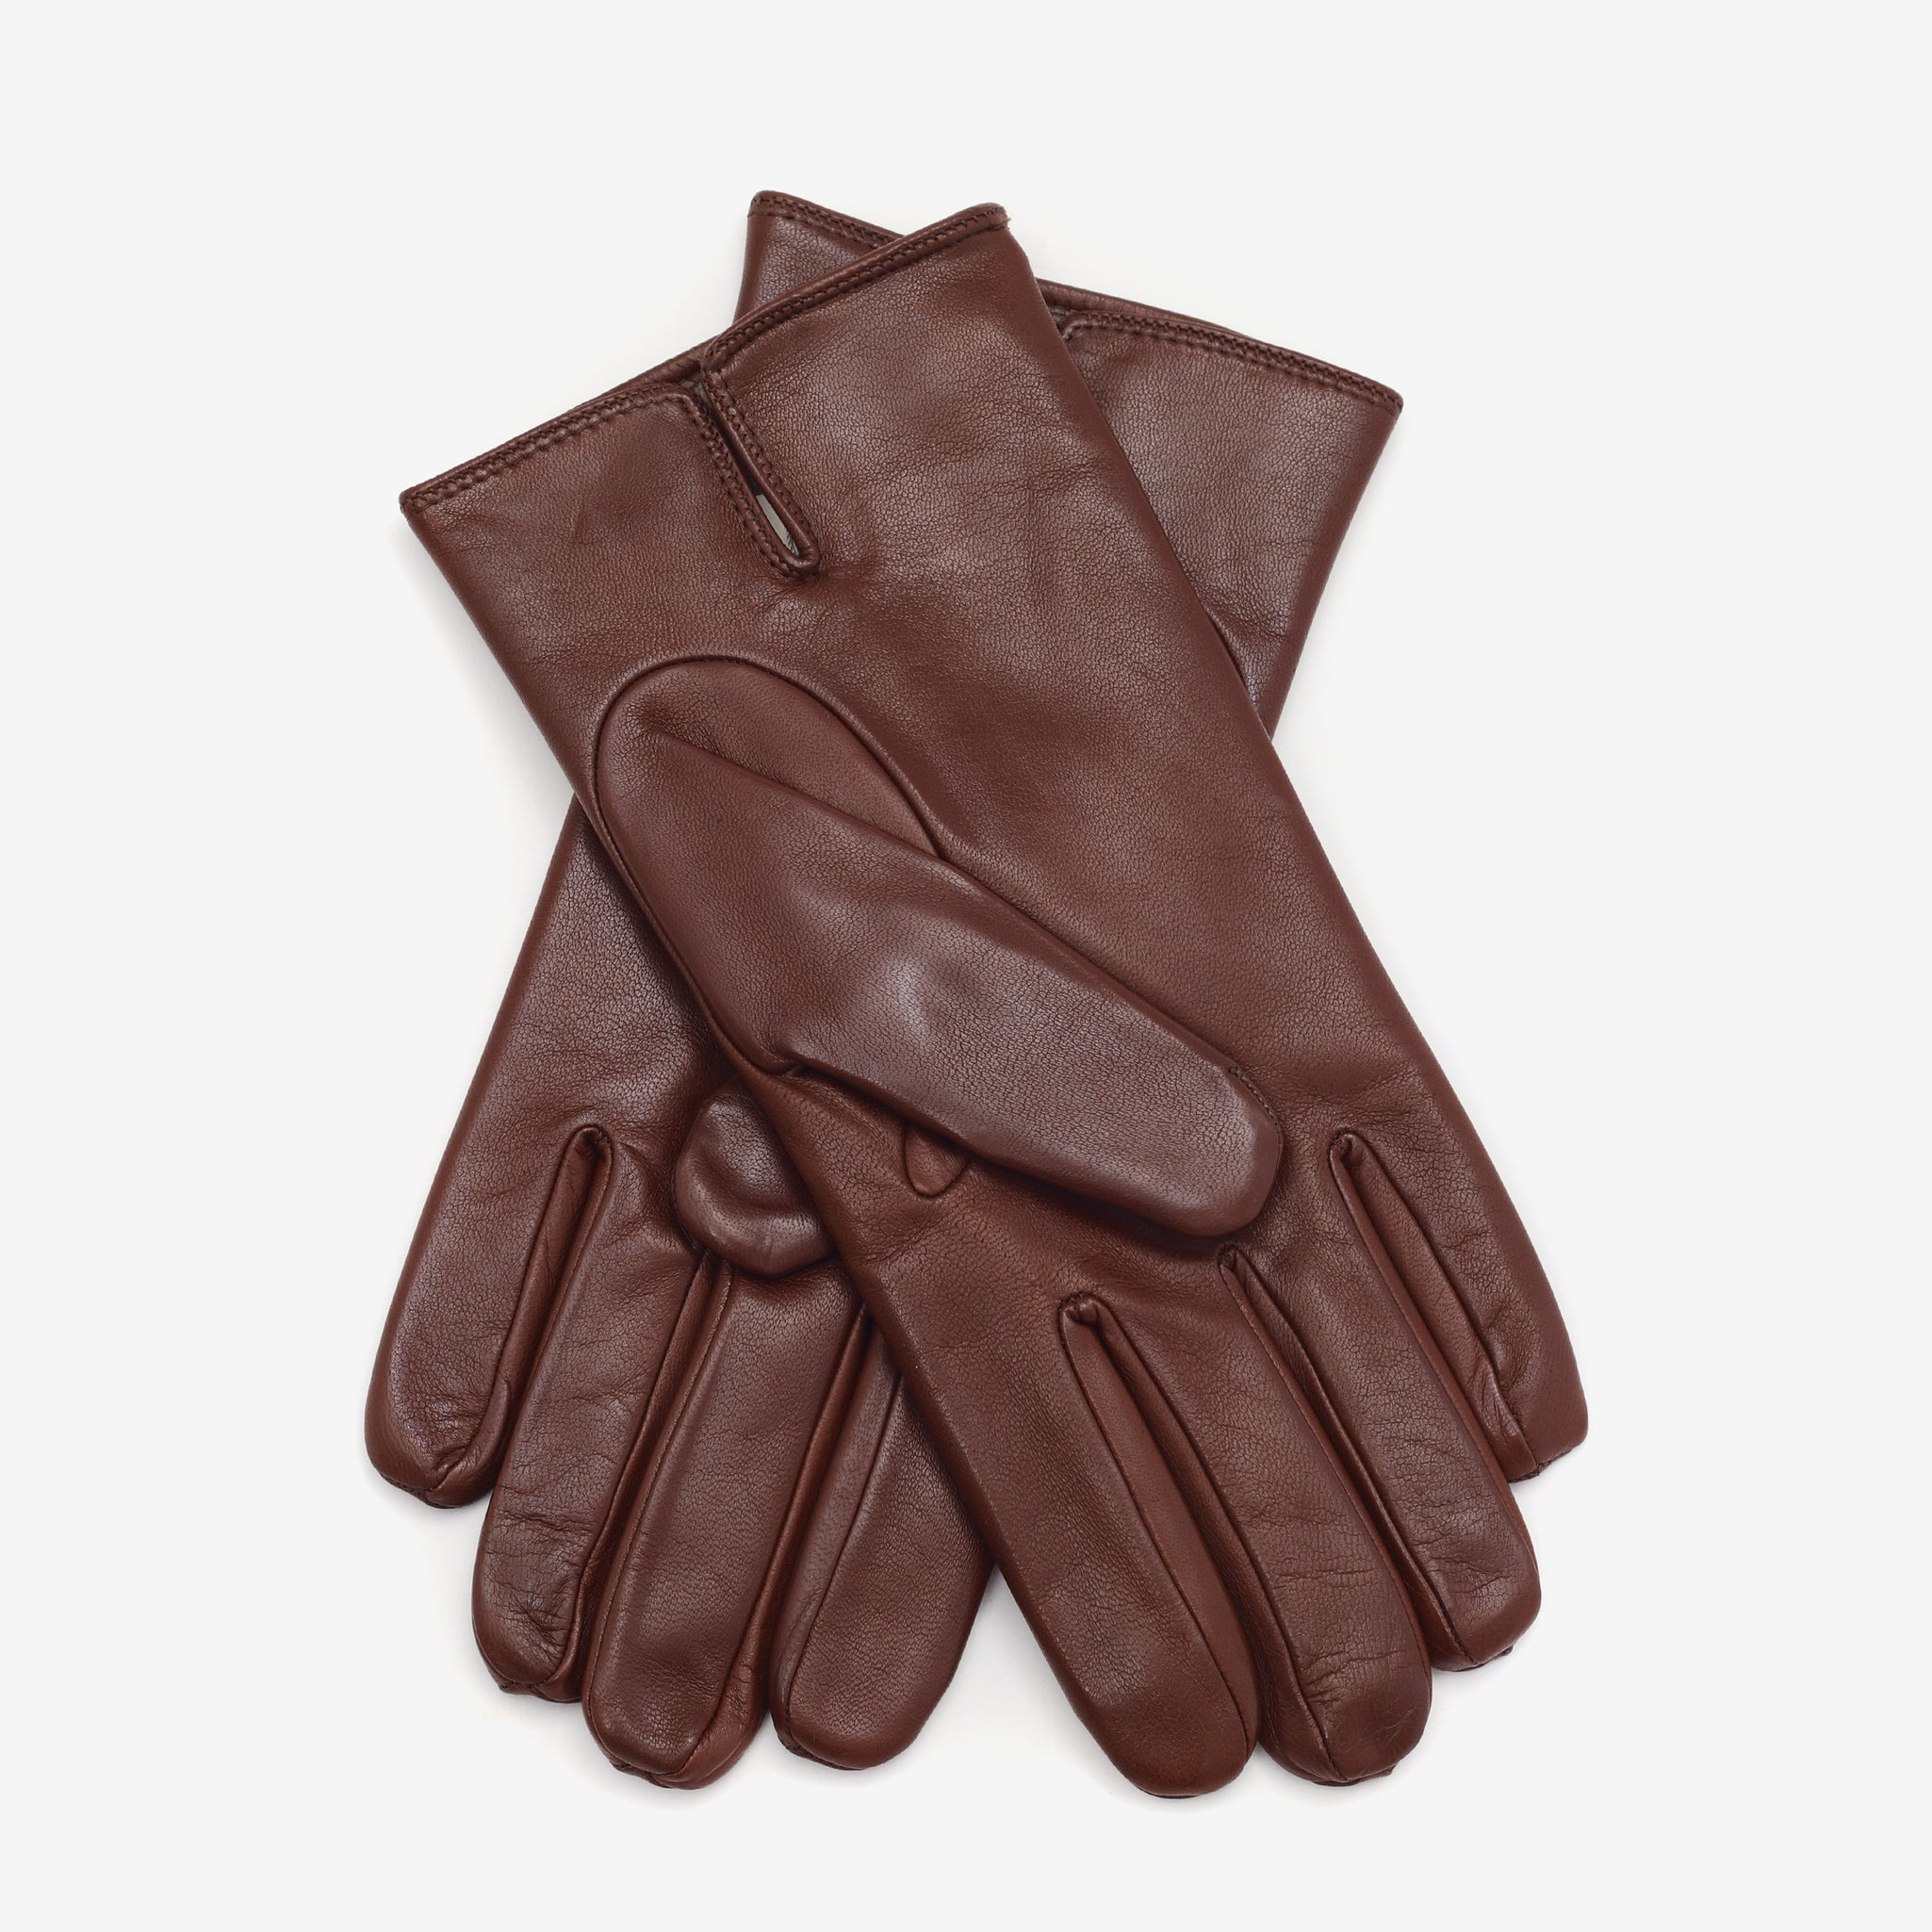 Cashmere Lined Nappa Gloves - Tan